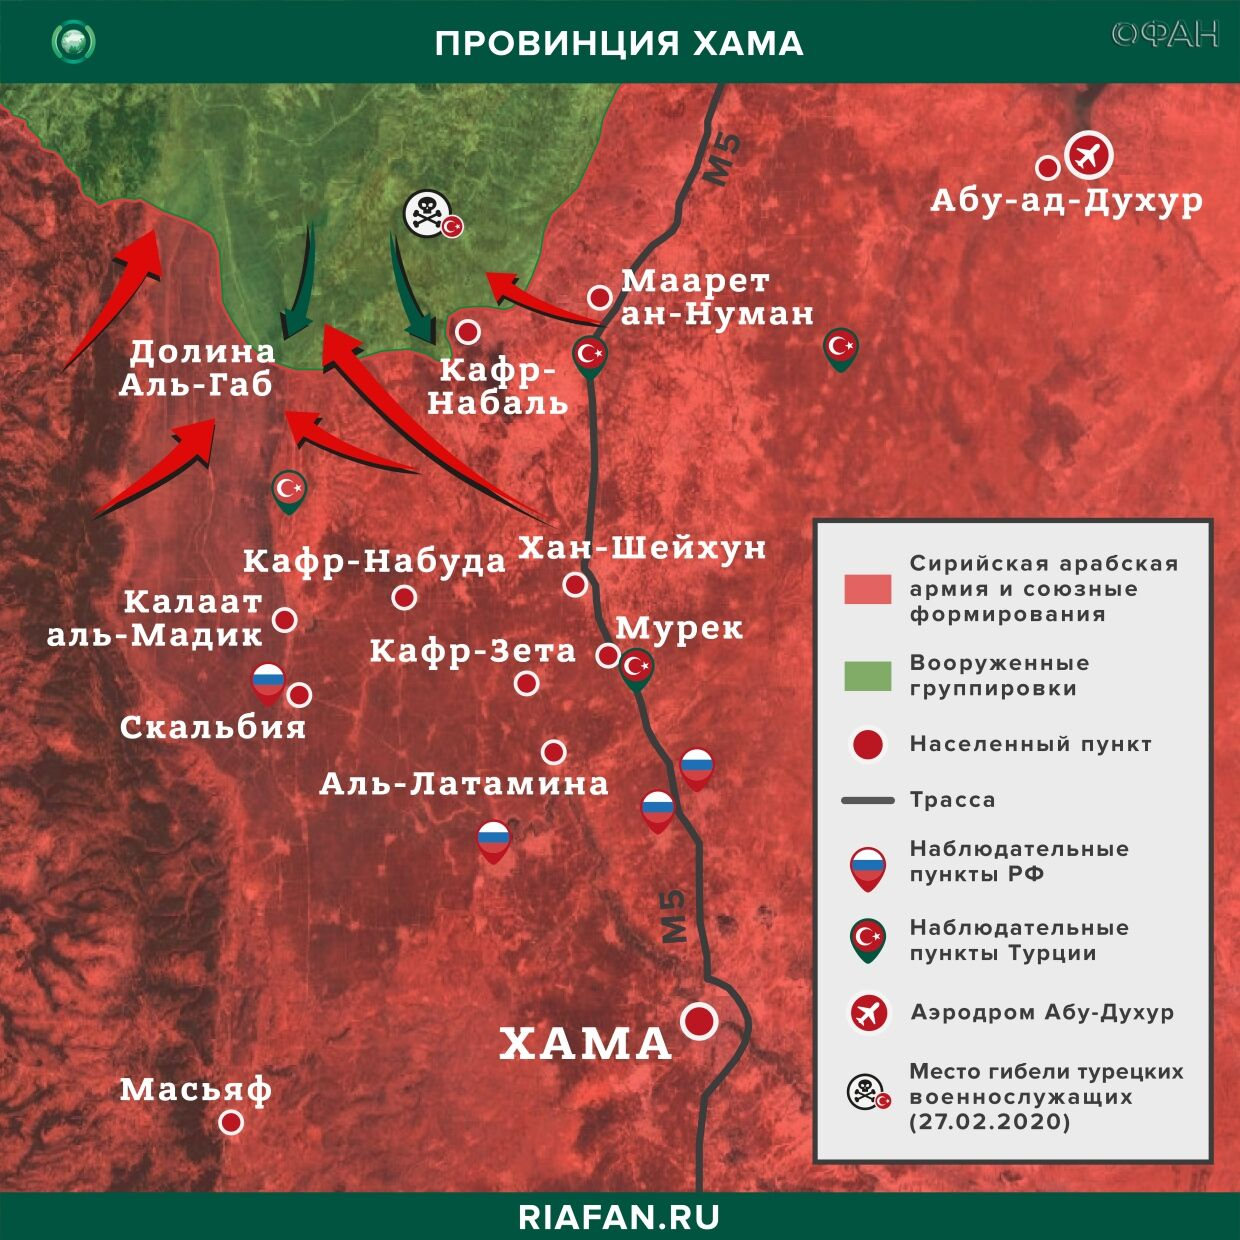 Syria the results of the day on 11 May 06.00: Syrian army repulsed militant attack in Hama, 18 man injured in a terrorist attack in Aleppo